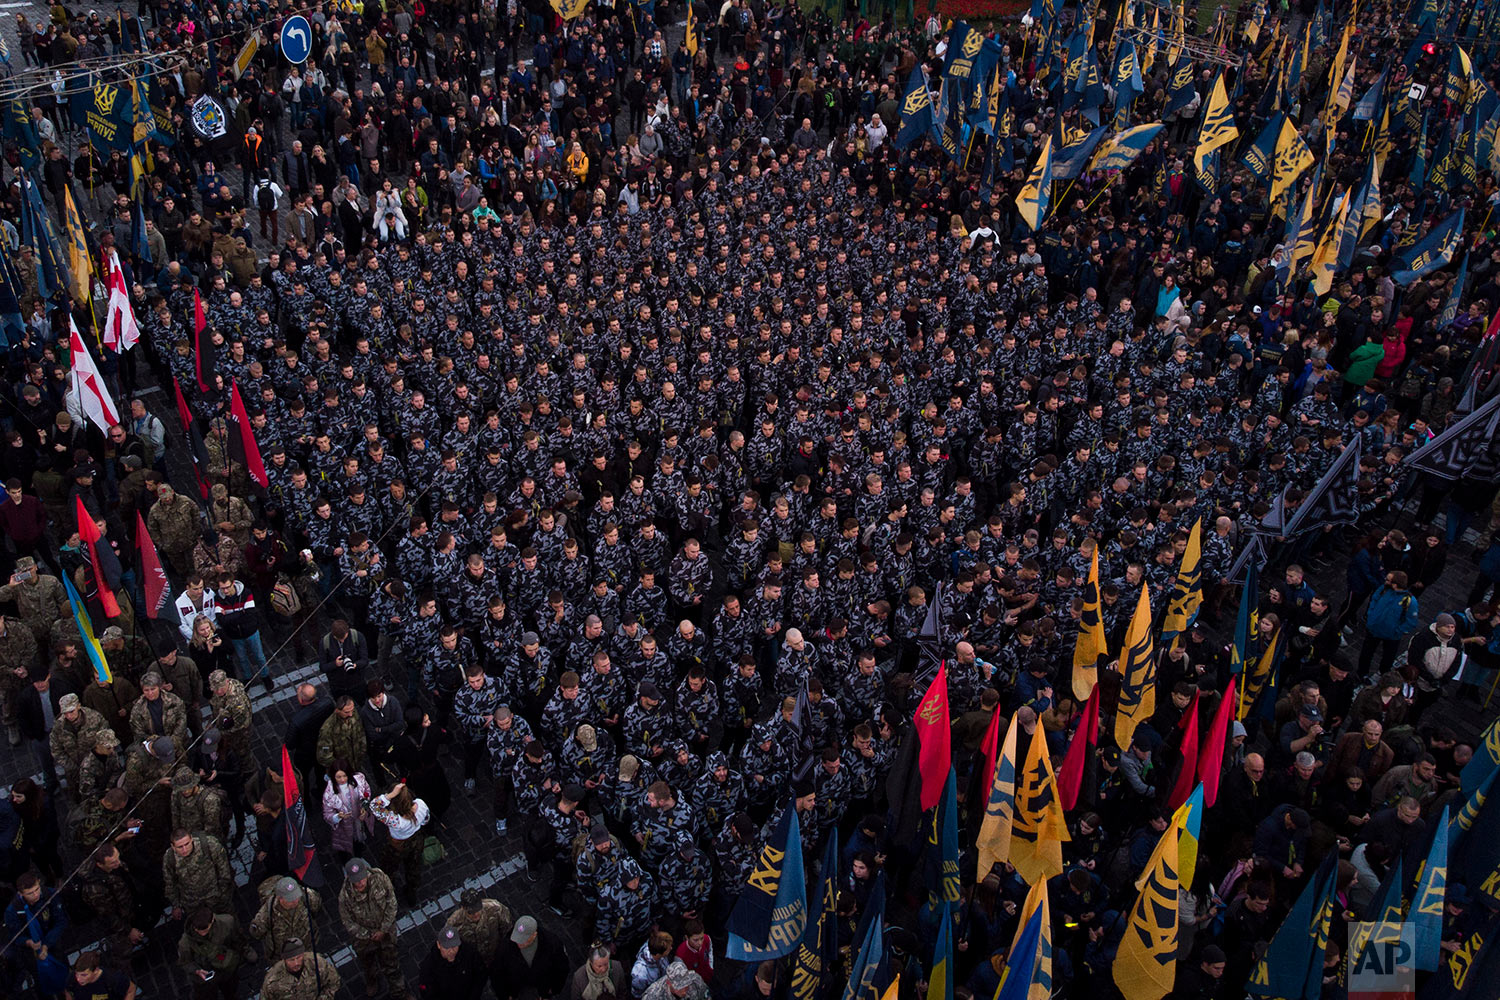 Members of nationalist movements stand in formation during a rally marking Defender of Ukraine Day in Kiev, Ukraine, Oct. 14, 2018. (AP Photo/Felipe Dana)